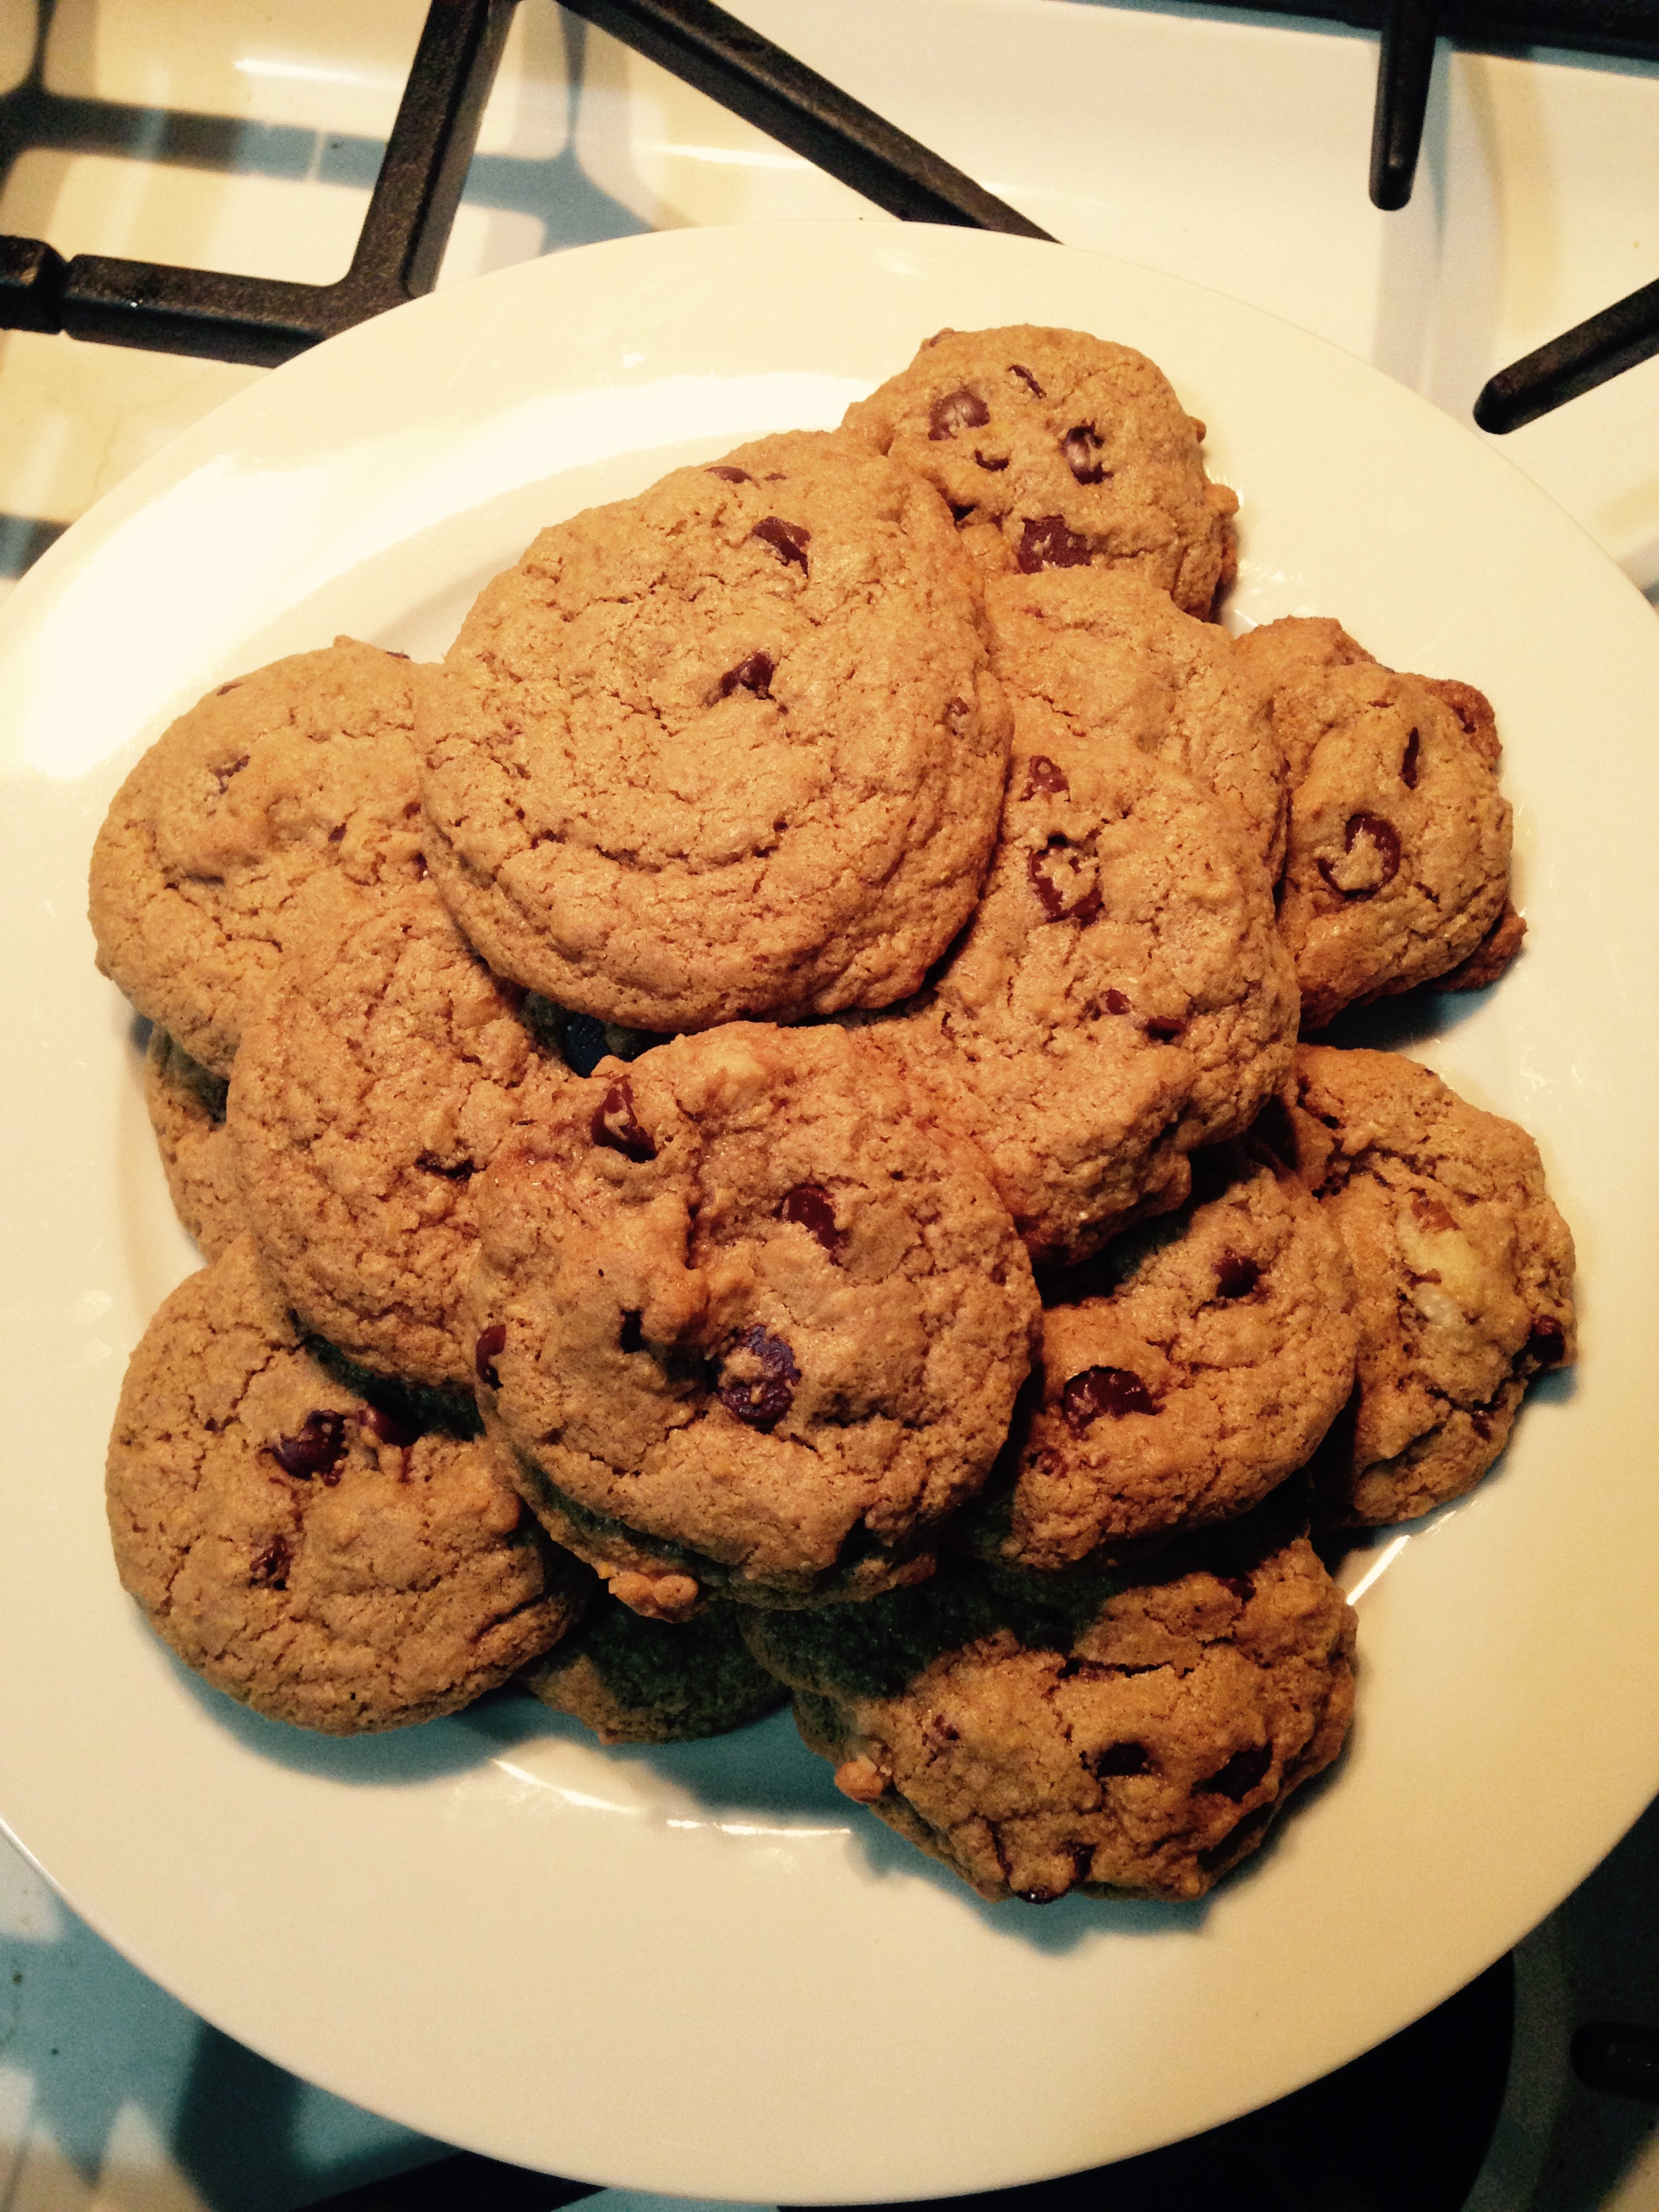 Nothing better than fresh-from-the-oven warm cookies!